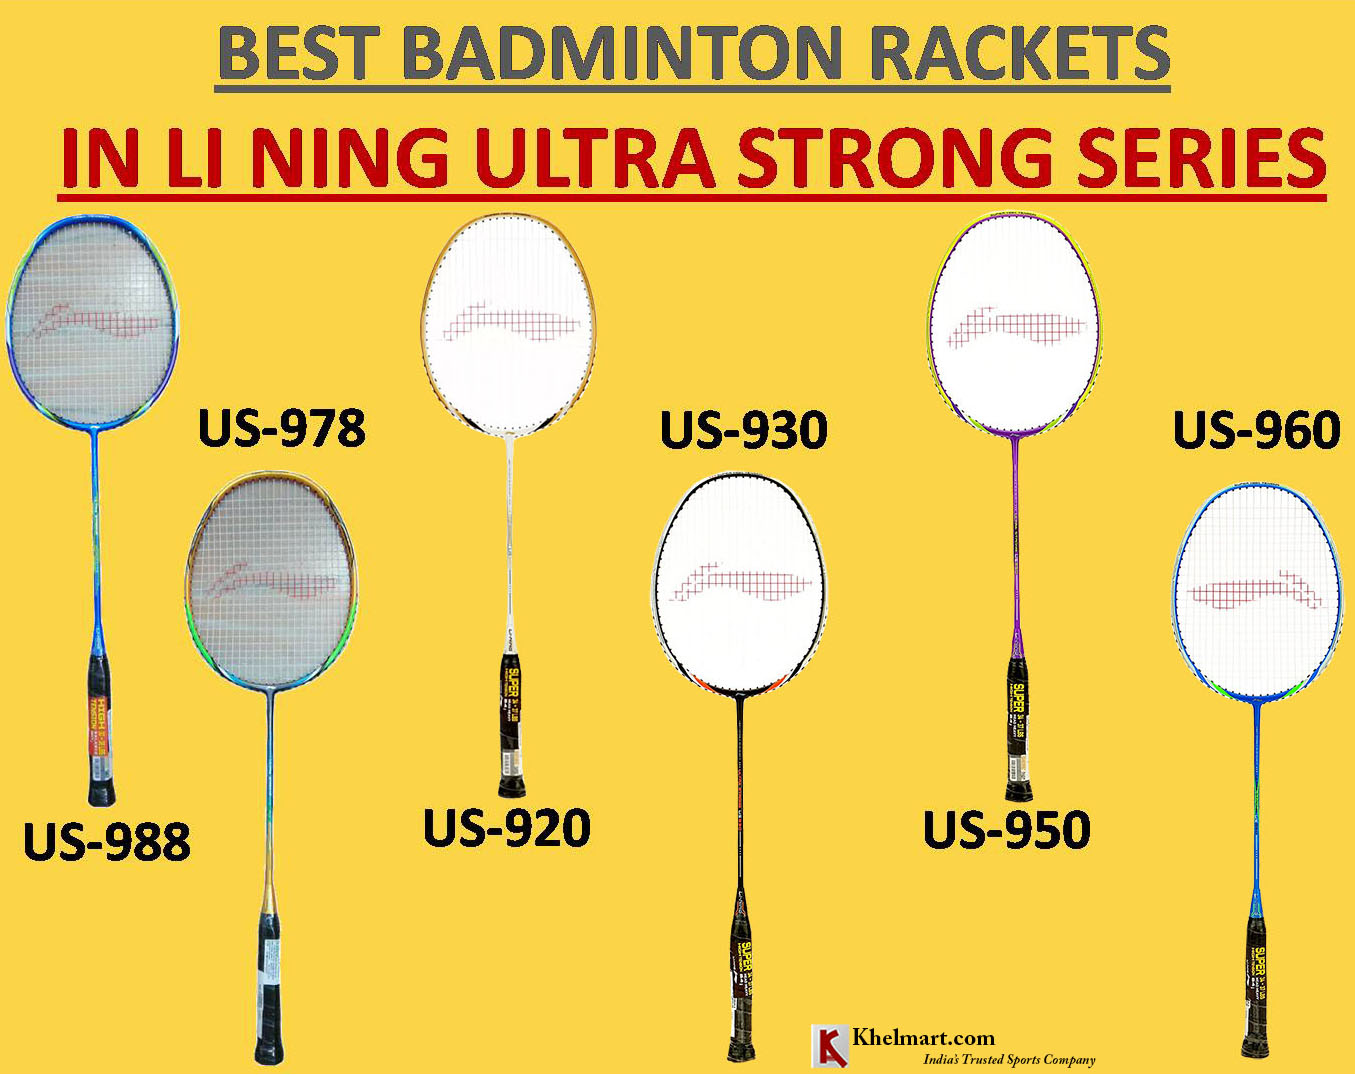 Best Badminto Rackets in LiNing Ultra Strong Series